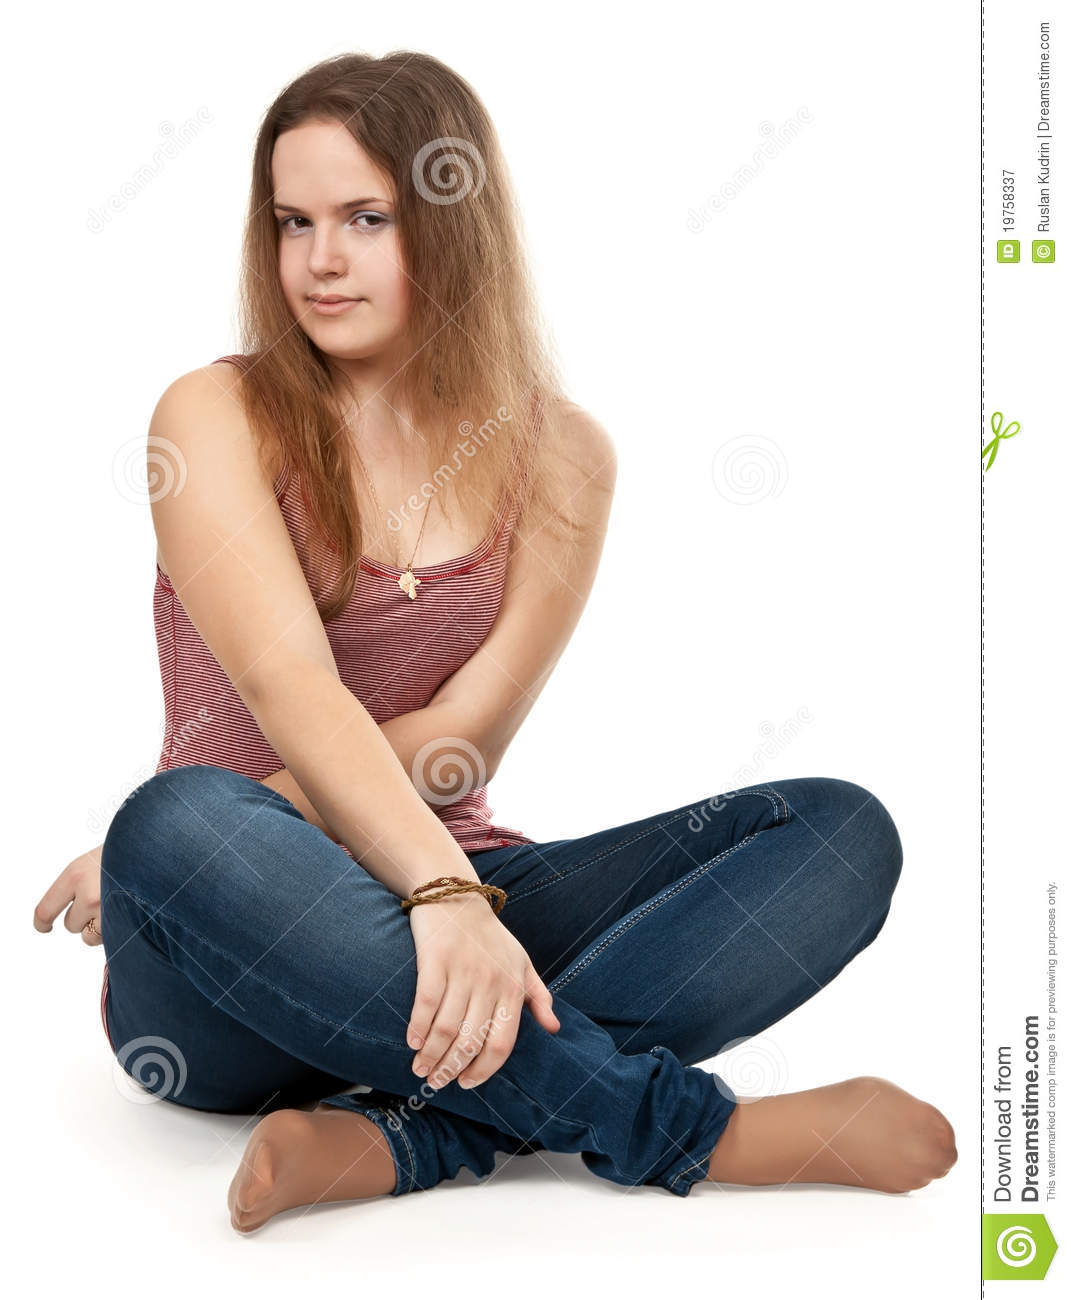 Girl Sitting In The Lotus Position Royalty Free Stock -4263